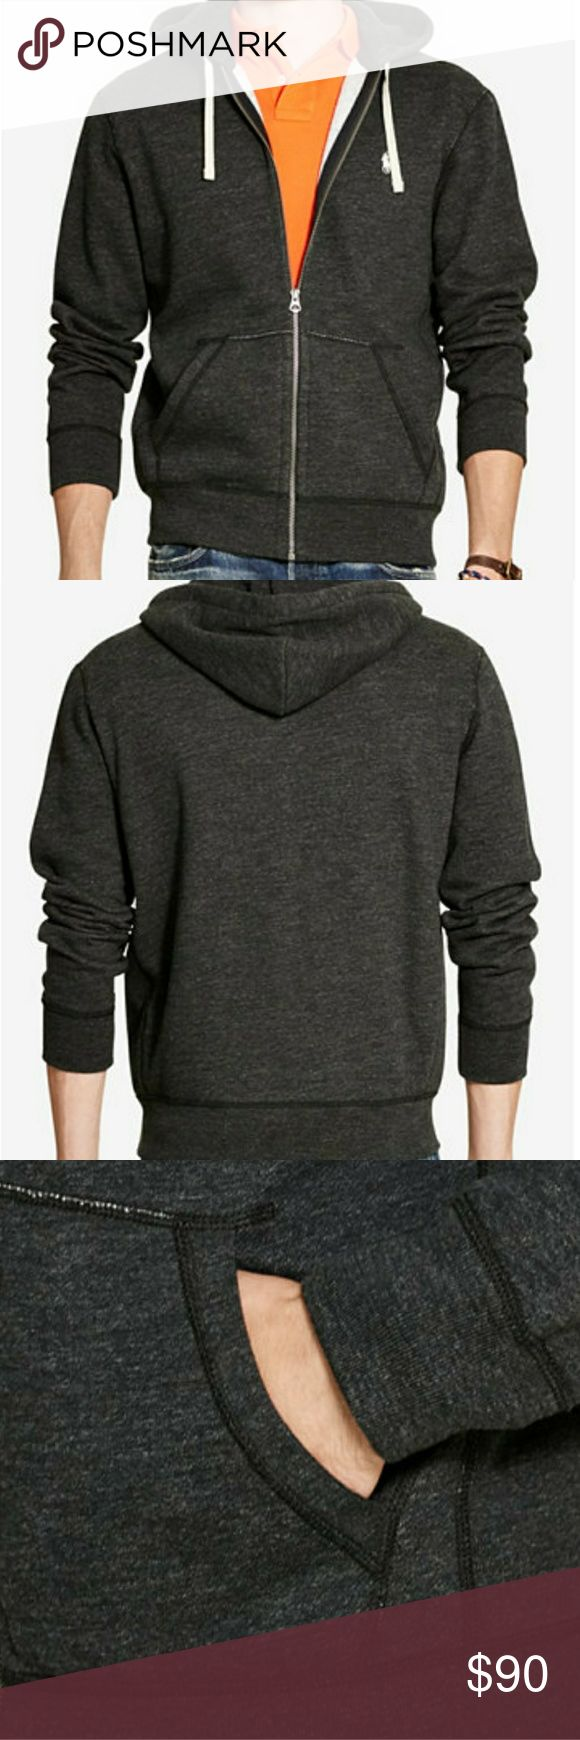 Men's Polo by Ralph Lauren New Hooded Sweatshirt Men's Polo Ralph Lauren hooded sweatshirt. Full zip and front pockets. Drawstring hood. Charcoal color with red Polo emblem. Size large and brand new. Polo by Ralph Lauren Shirts Sweatshirts & Hoodies